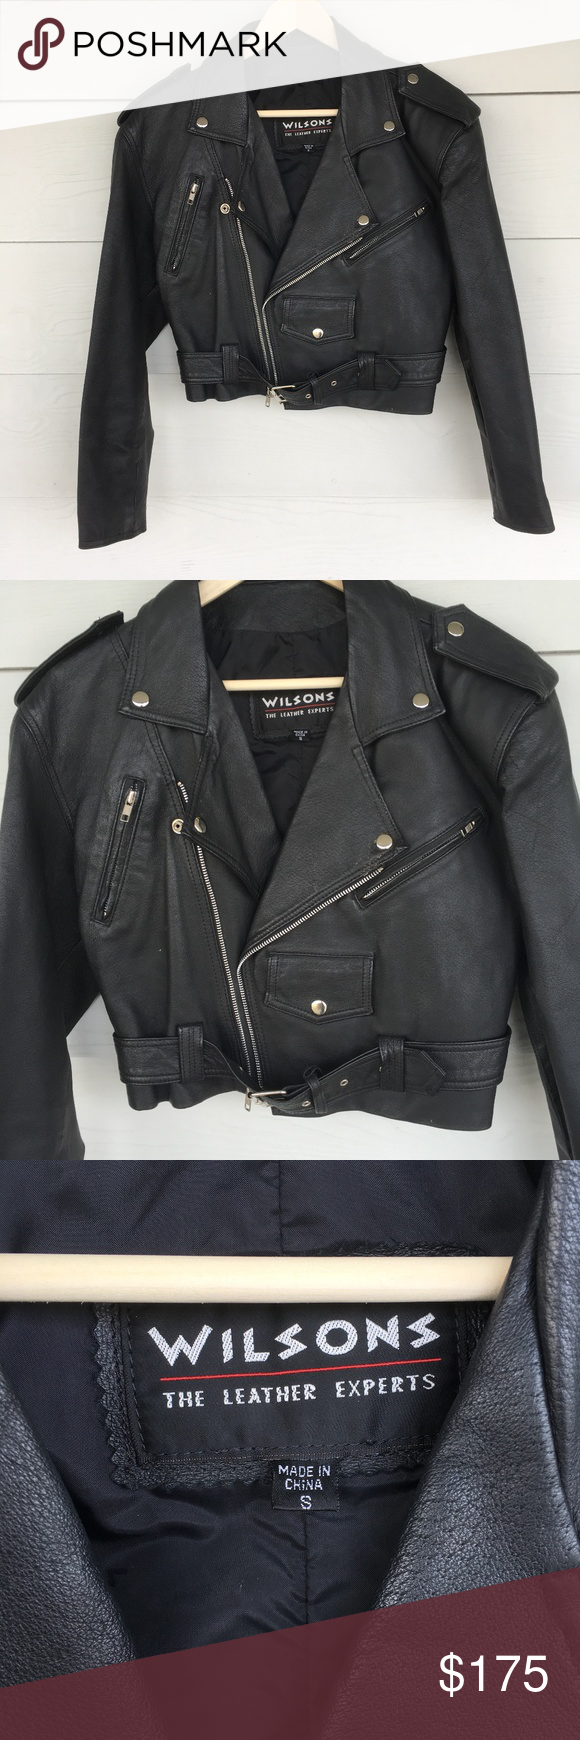 Black Wilson Leather Motorcycle Jacket Wilsons leather